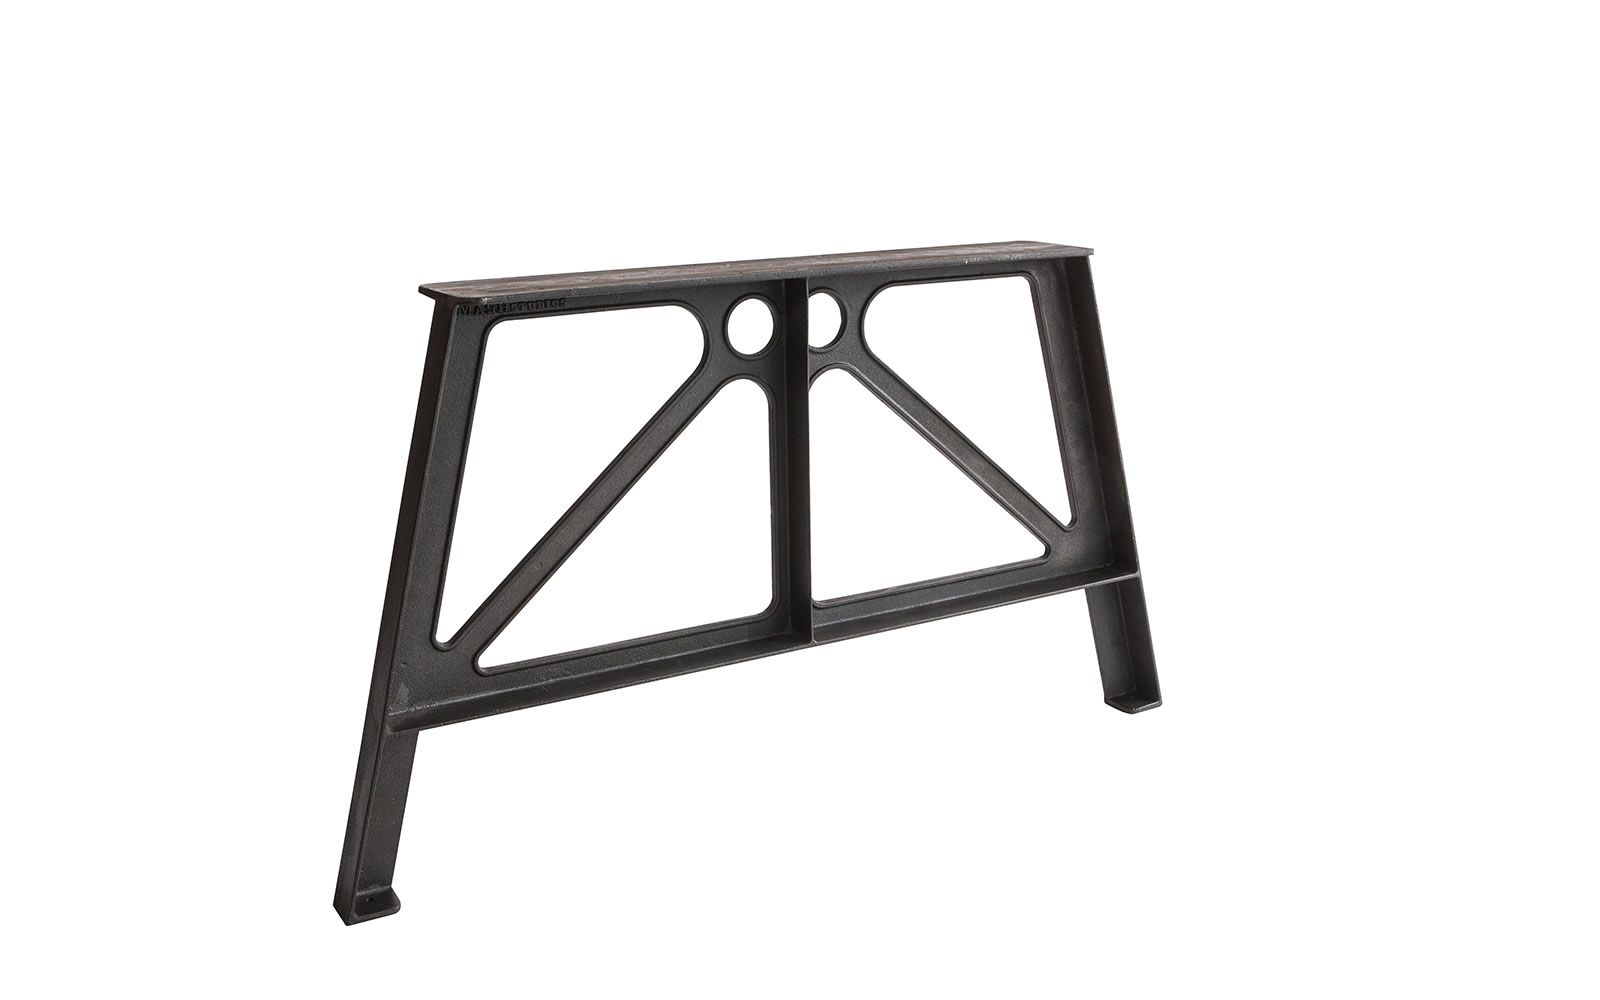 Edge dining table trestle legs iron and rustic country kitchens laxseries cast iron trestle leg watchthetrailerfo